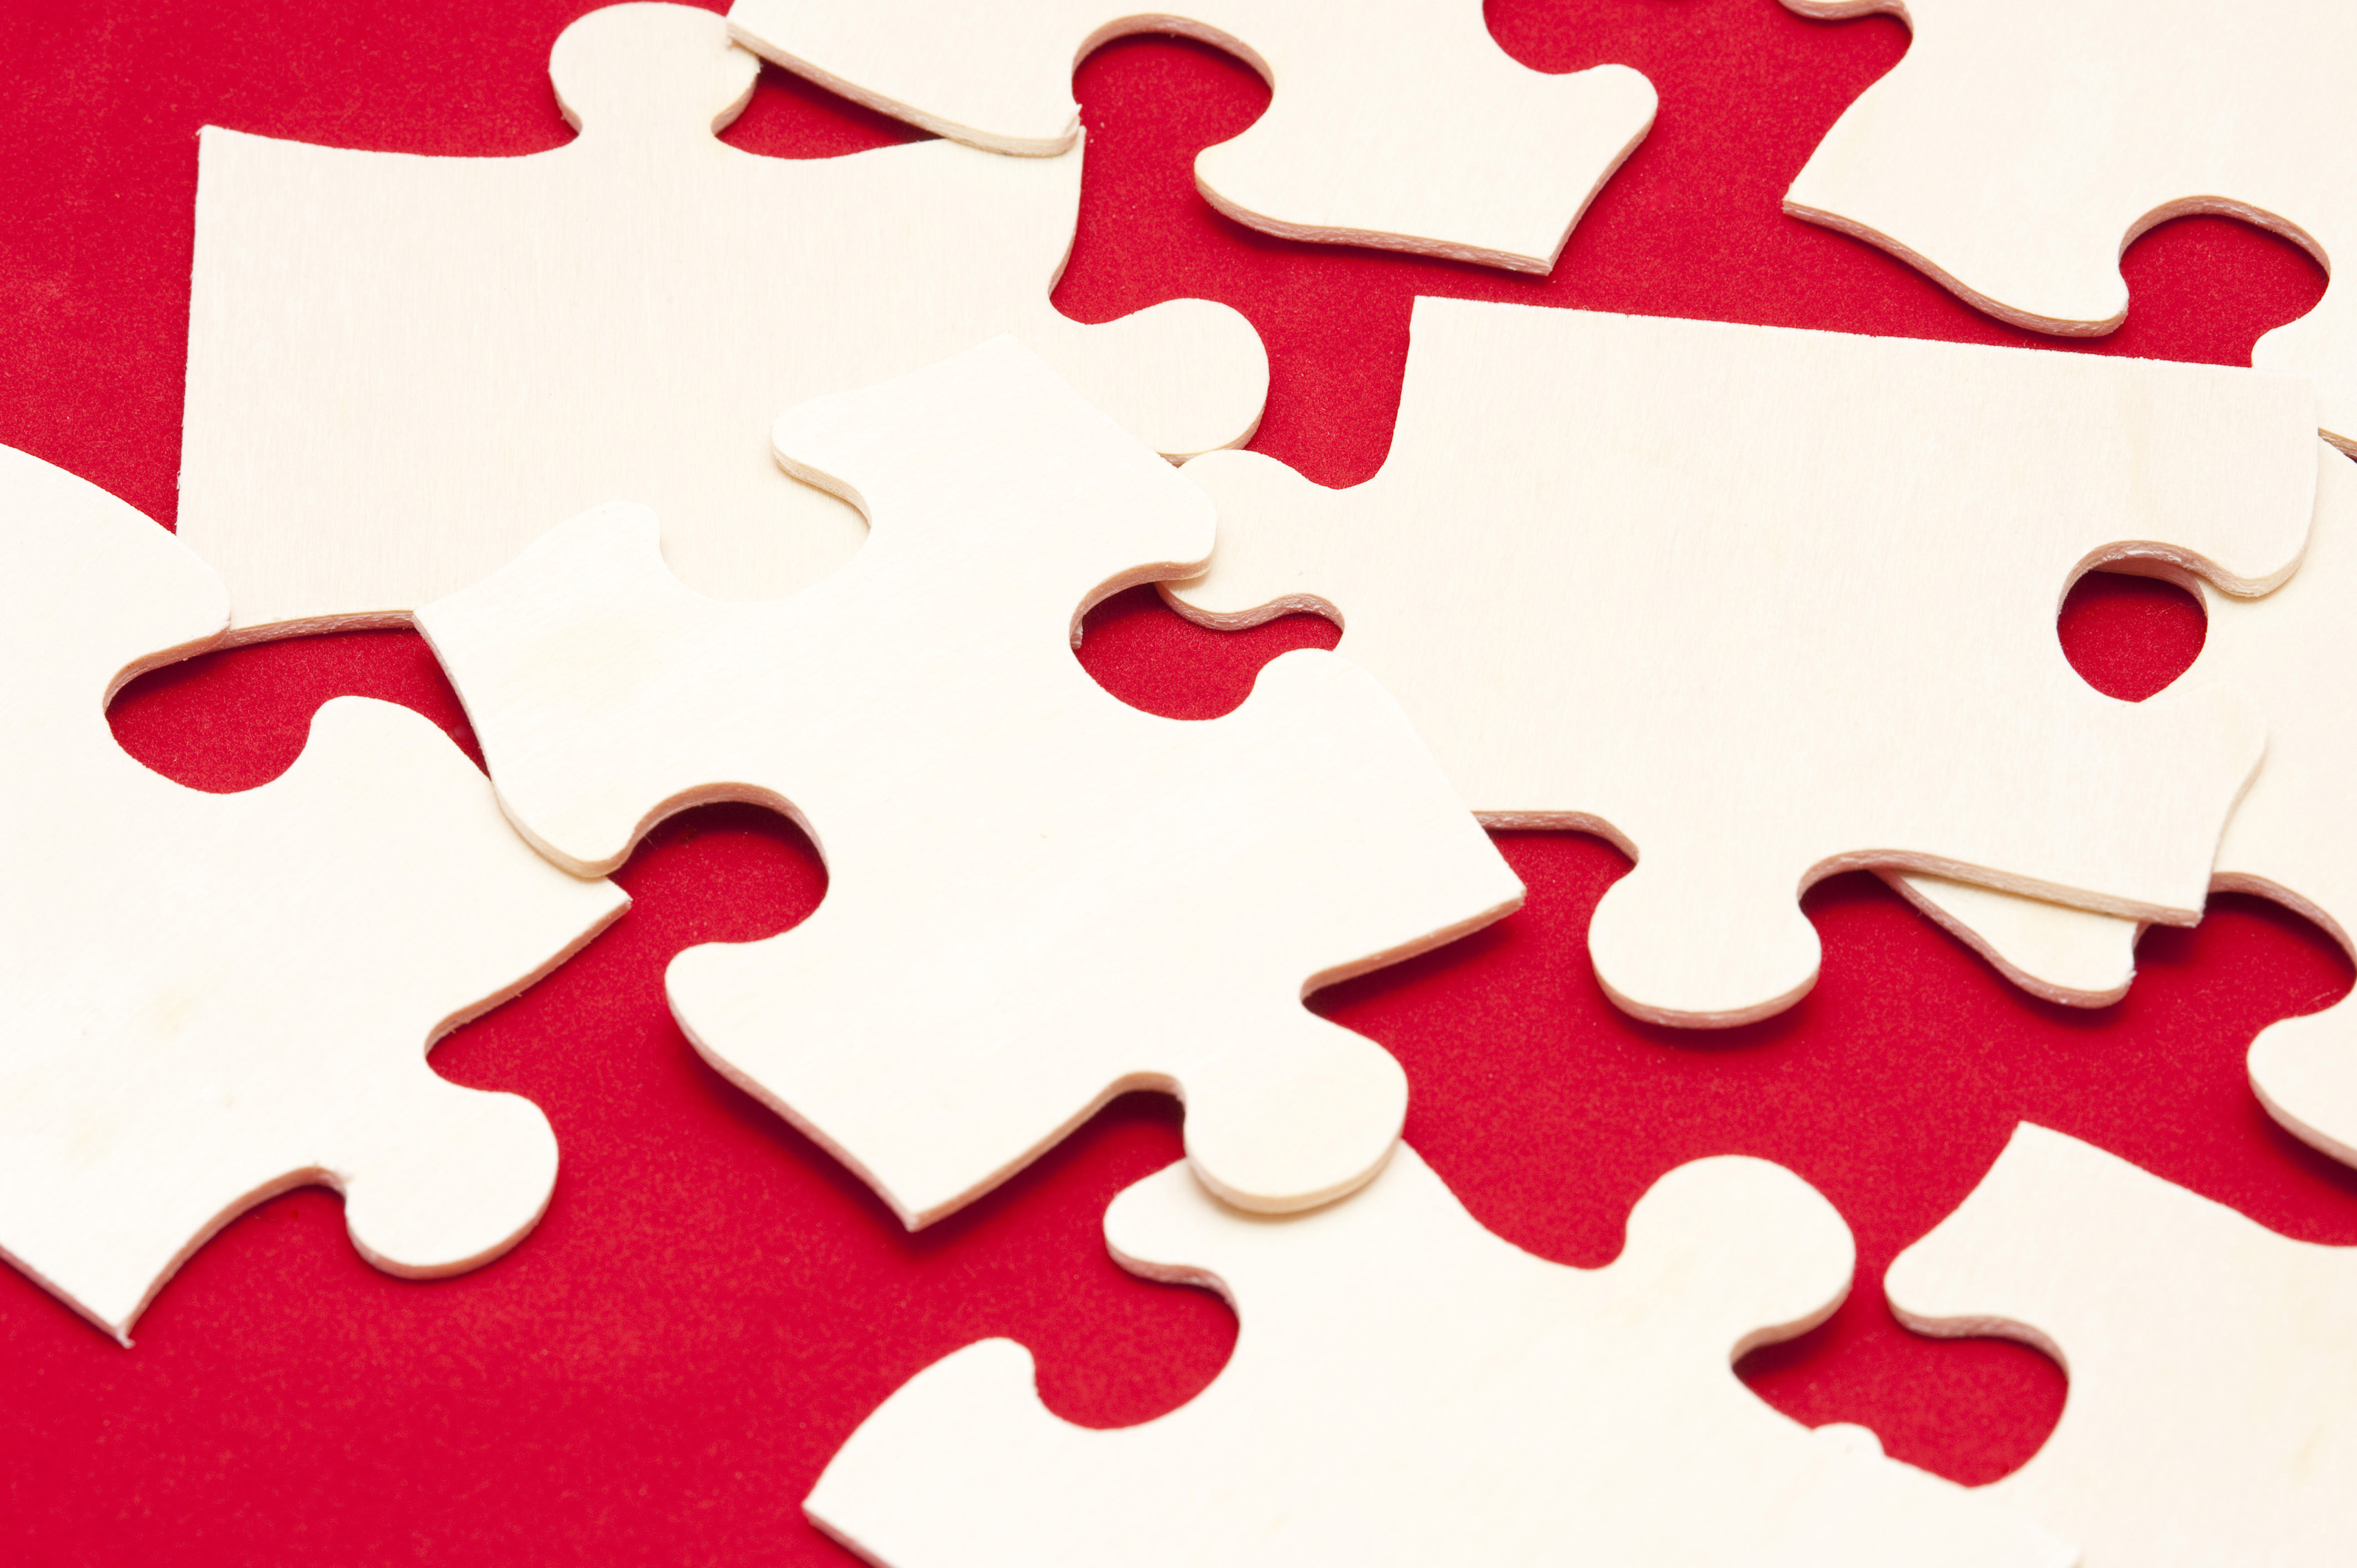 Free Stock Photo 10755 Scattered white jigsaw puzzle pieces | freeimageslive